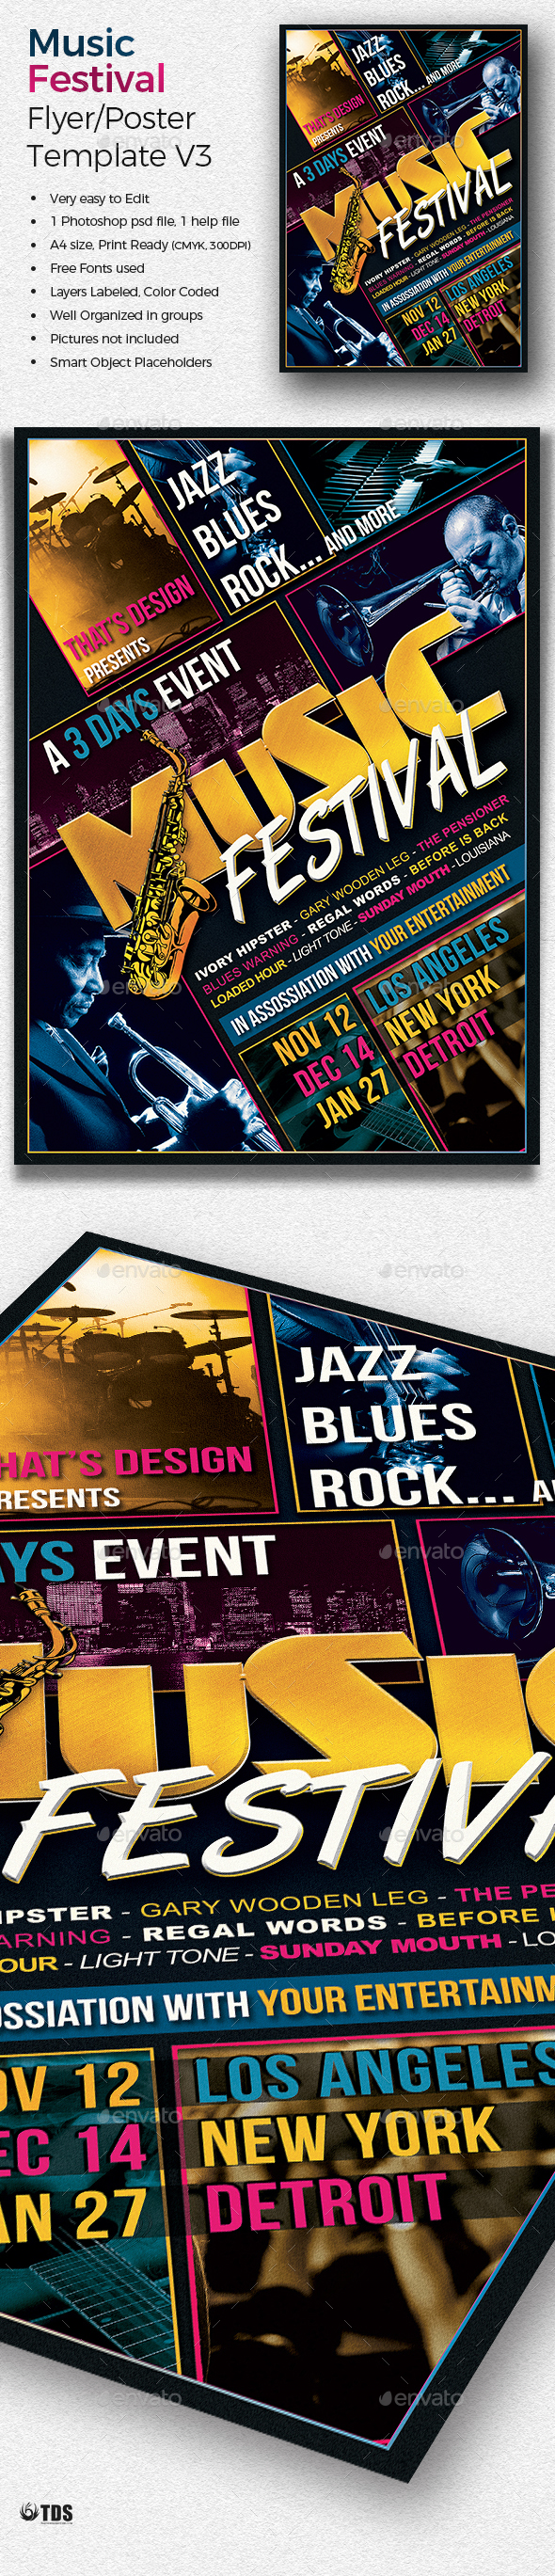 Music Festival Flyer Template V3 - Concerts Events